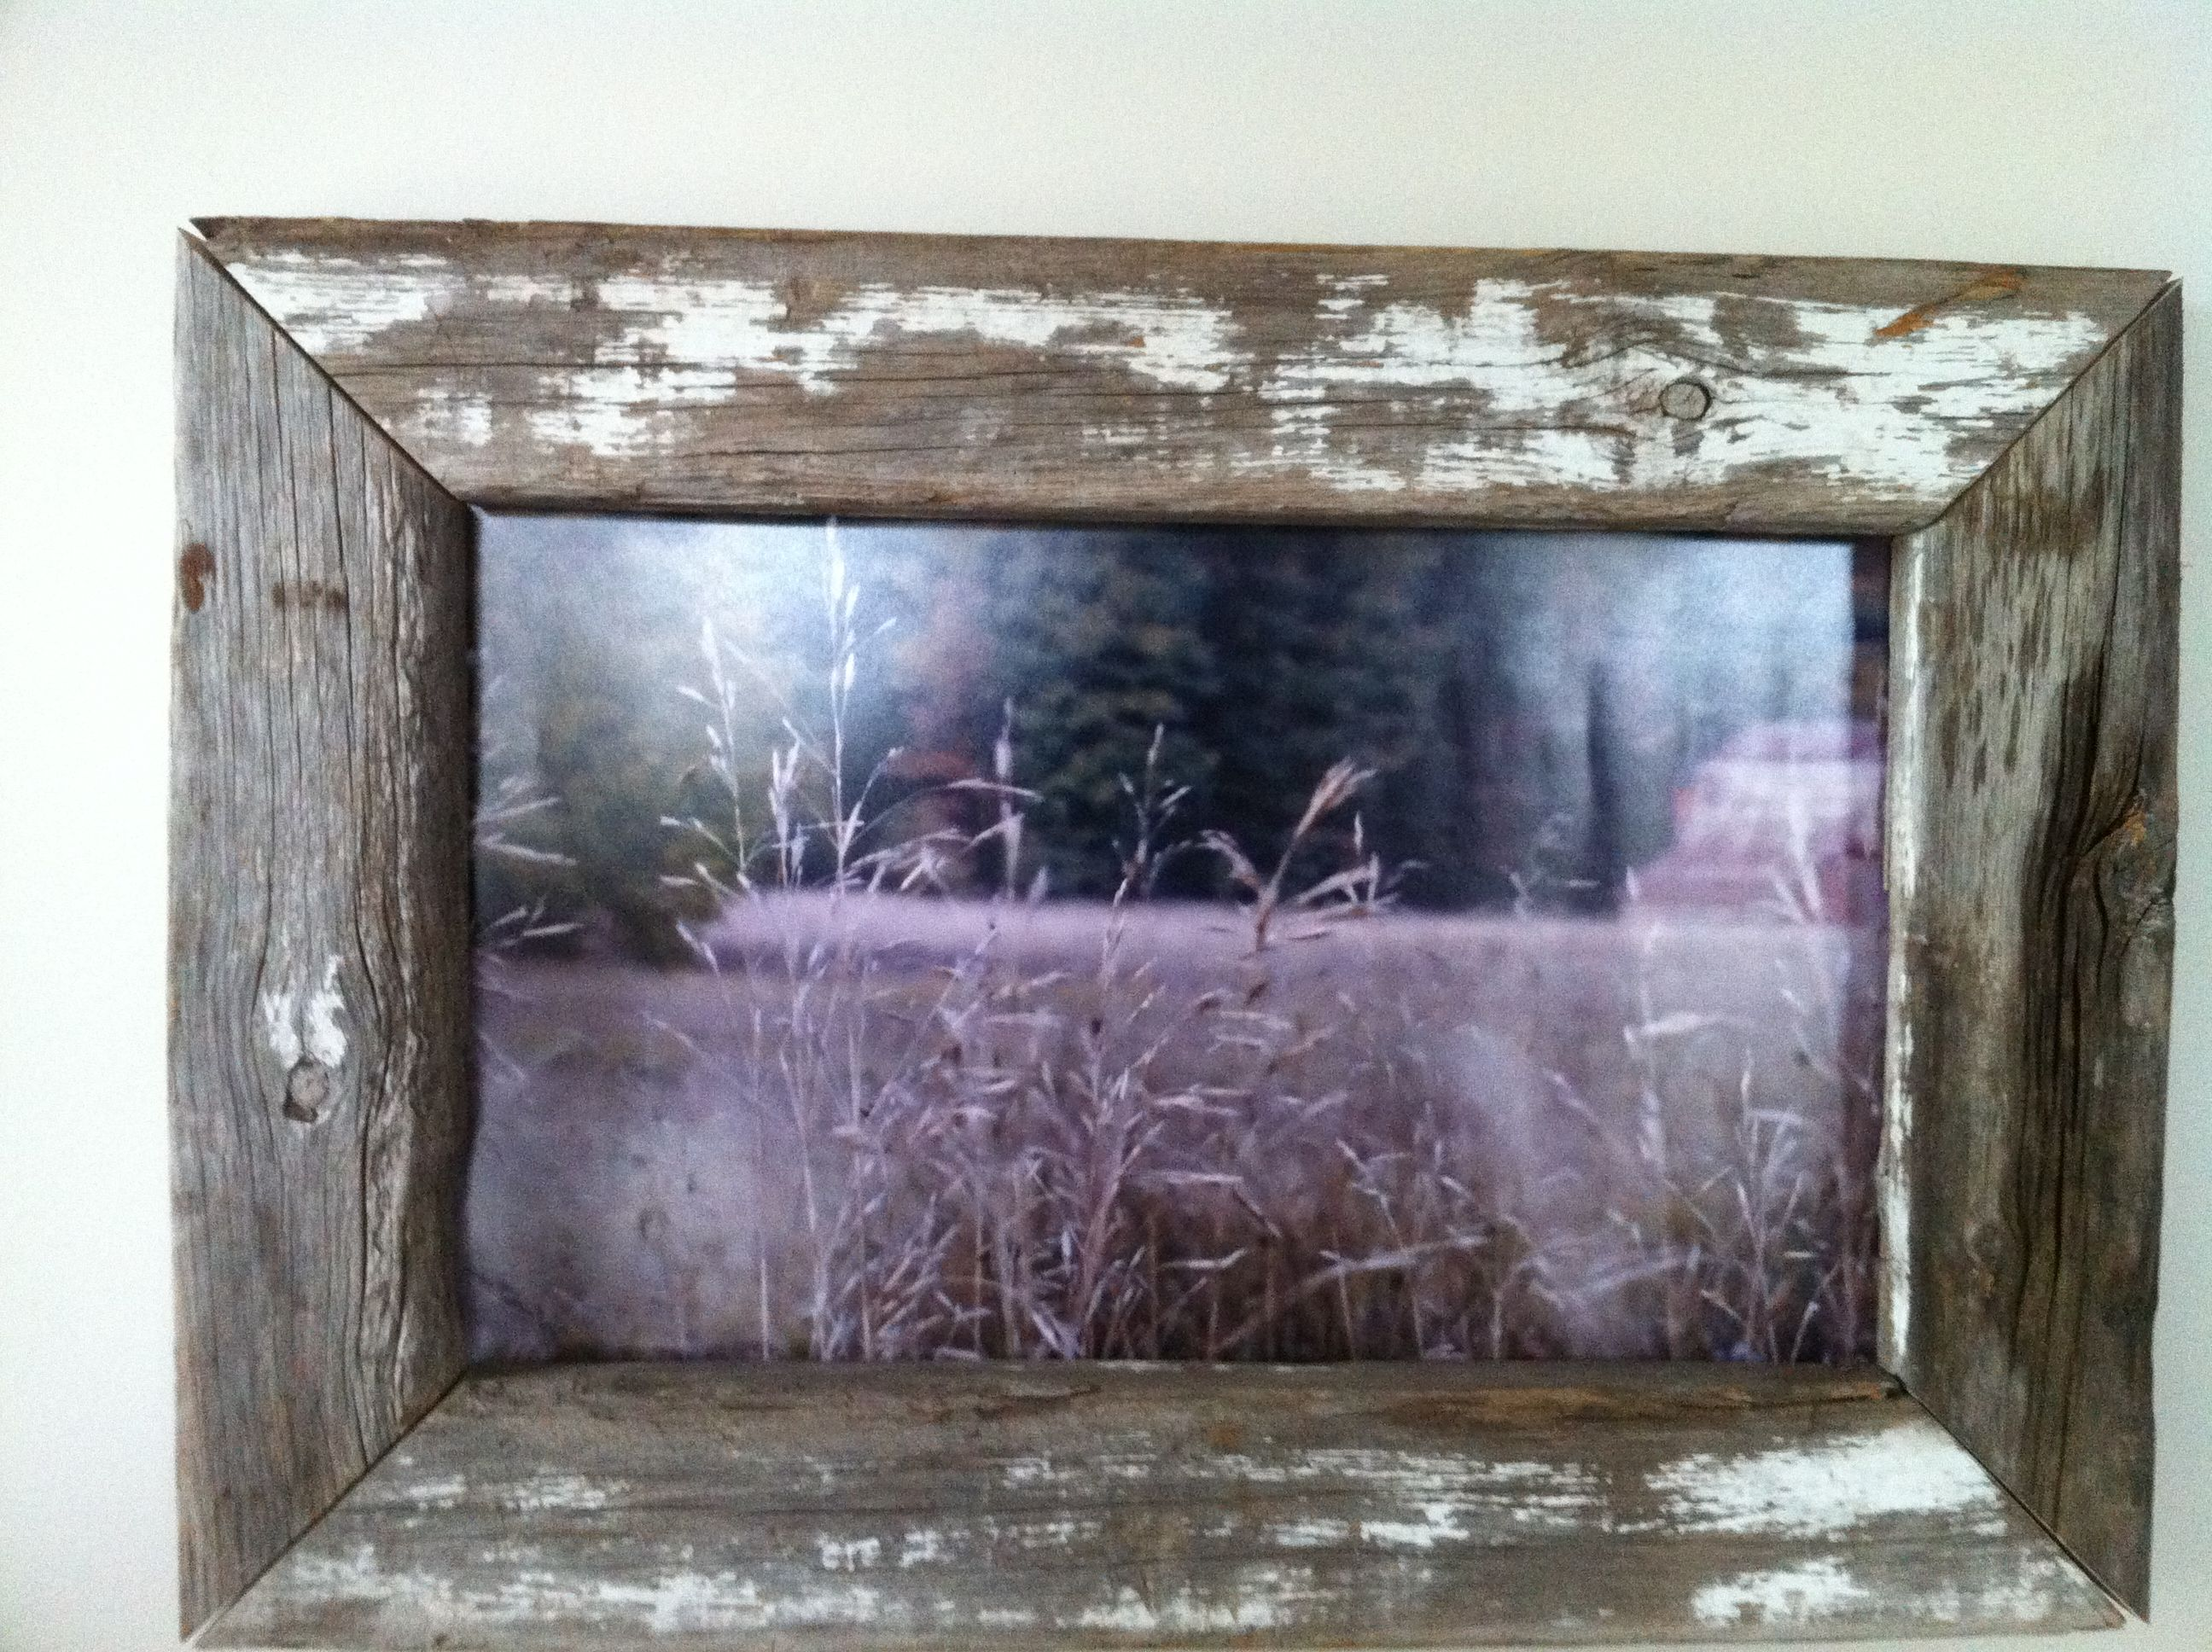 Old reclaimed barn wood frame craft ideas pinterest for Making craft projects from old barn wood